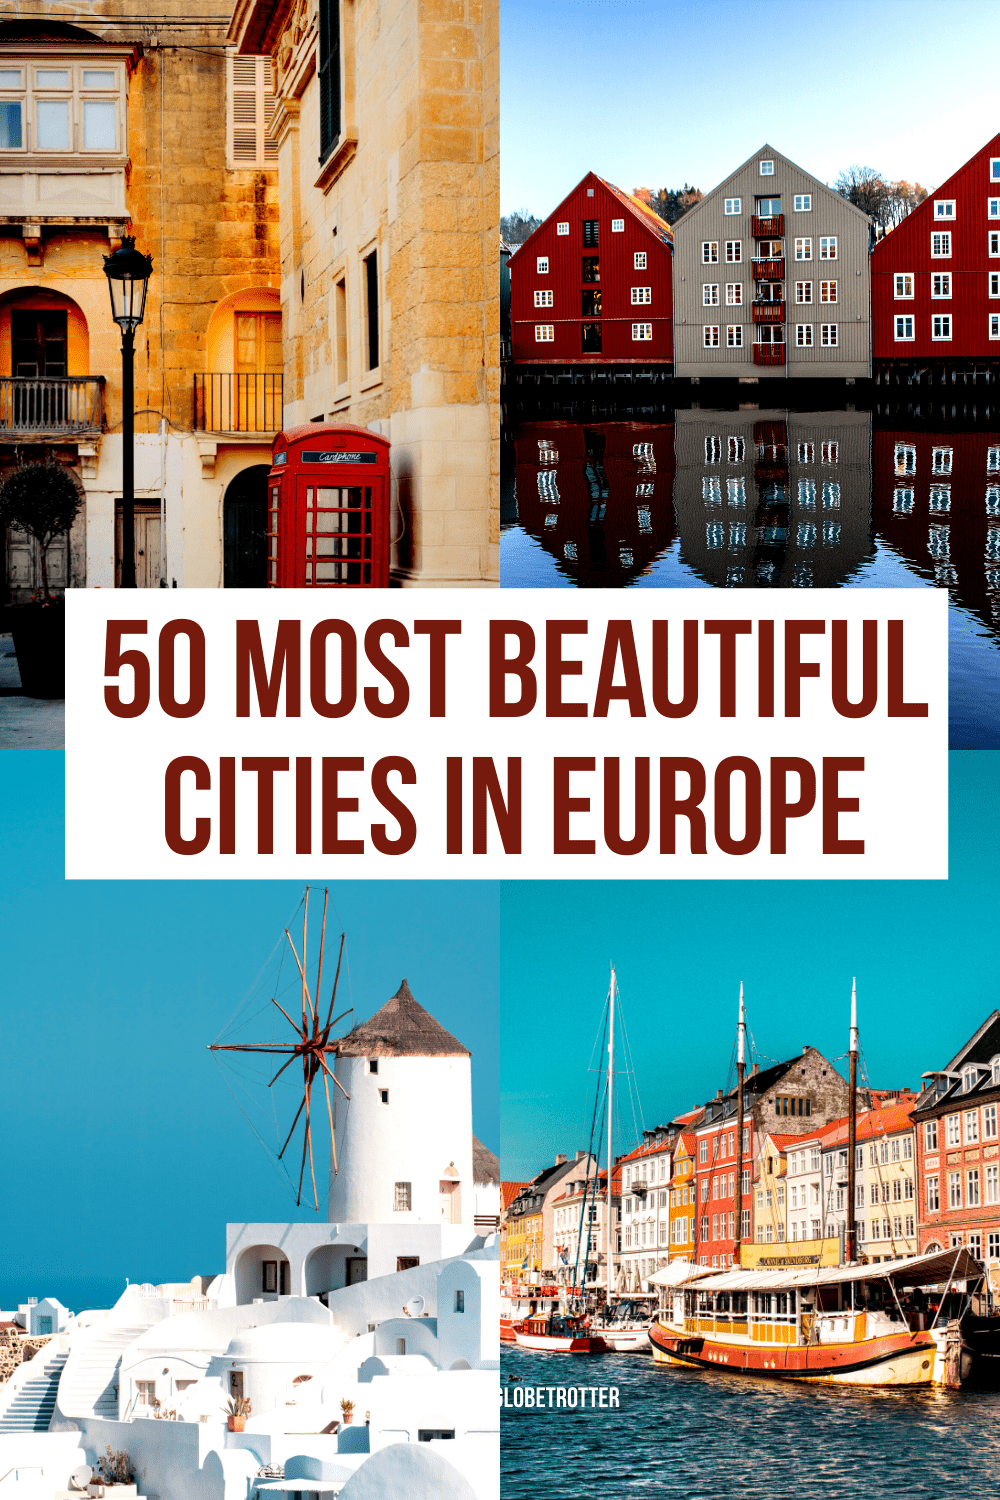 50 Most Beautiful Cities In Europe To Fuel Your Wanderlust